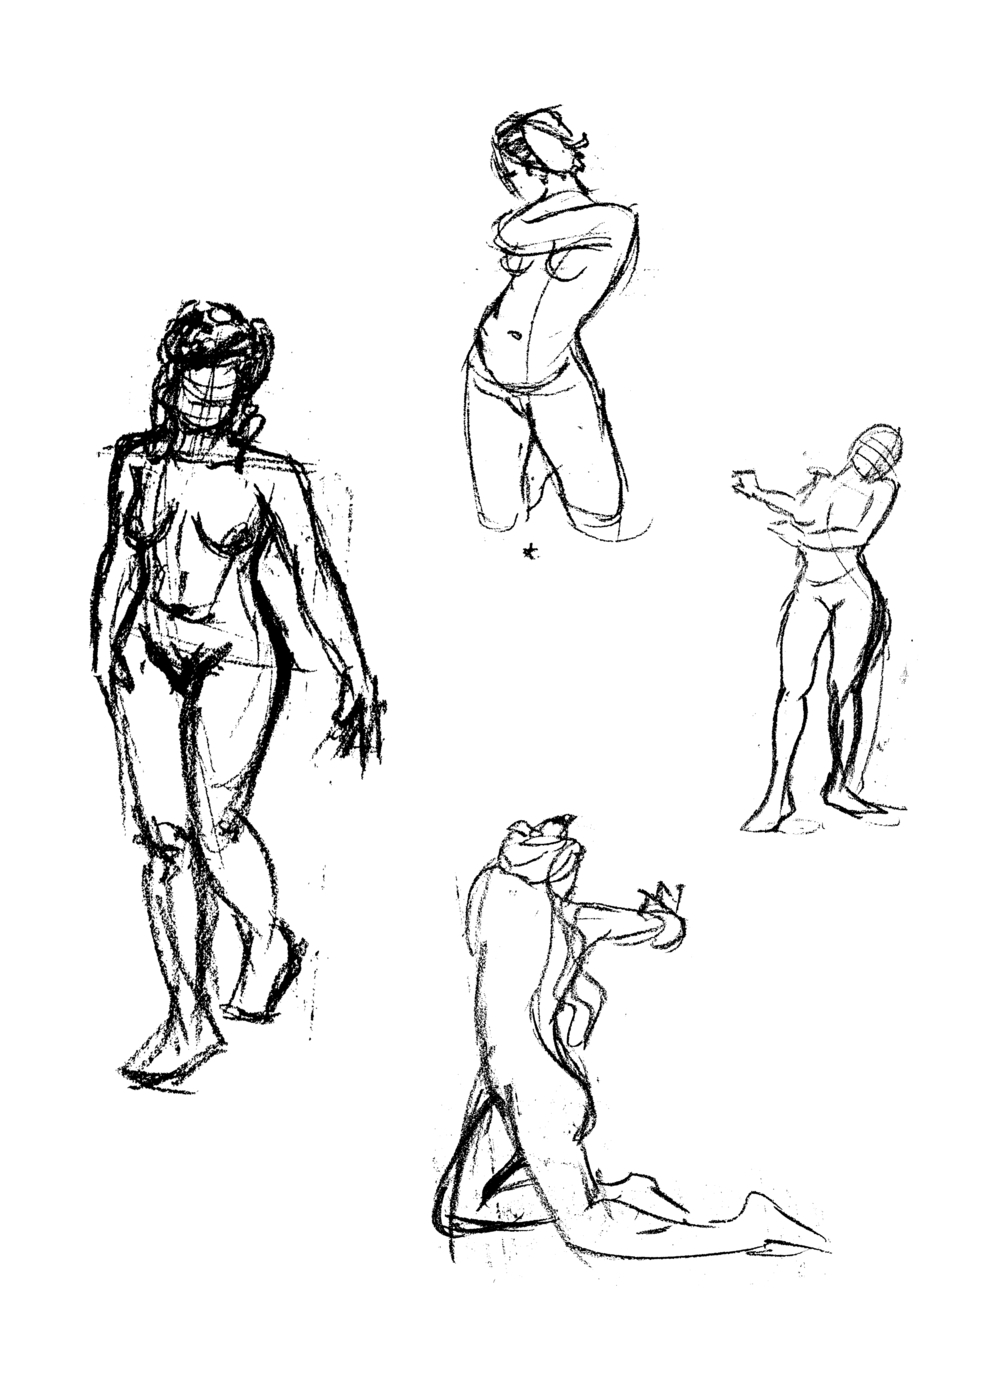 LD; 5 min gestures 4 wo layout.jpeg